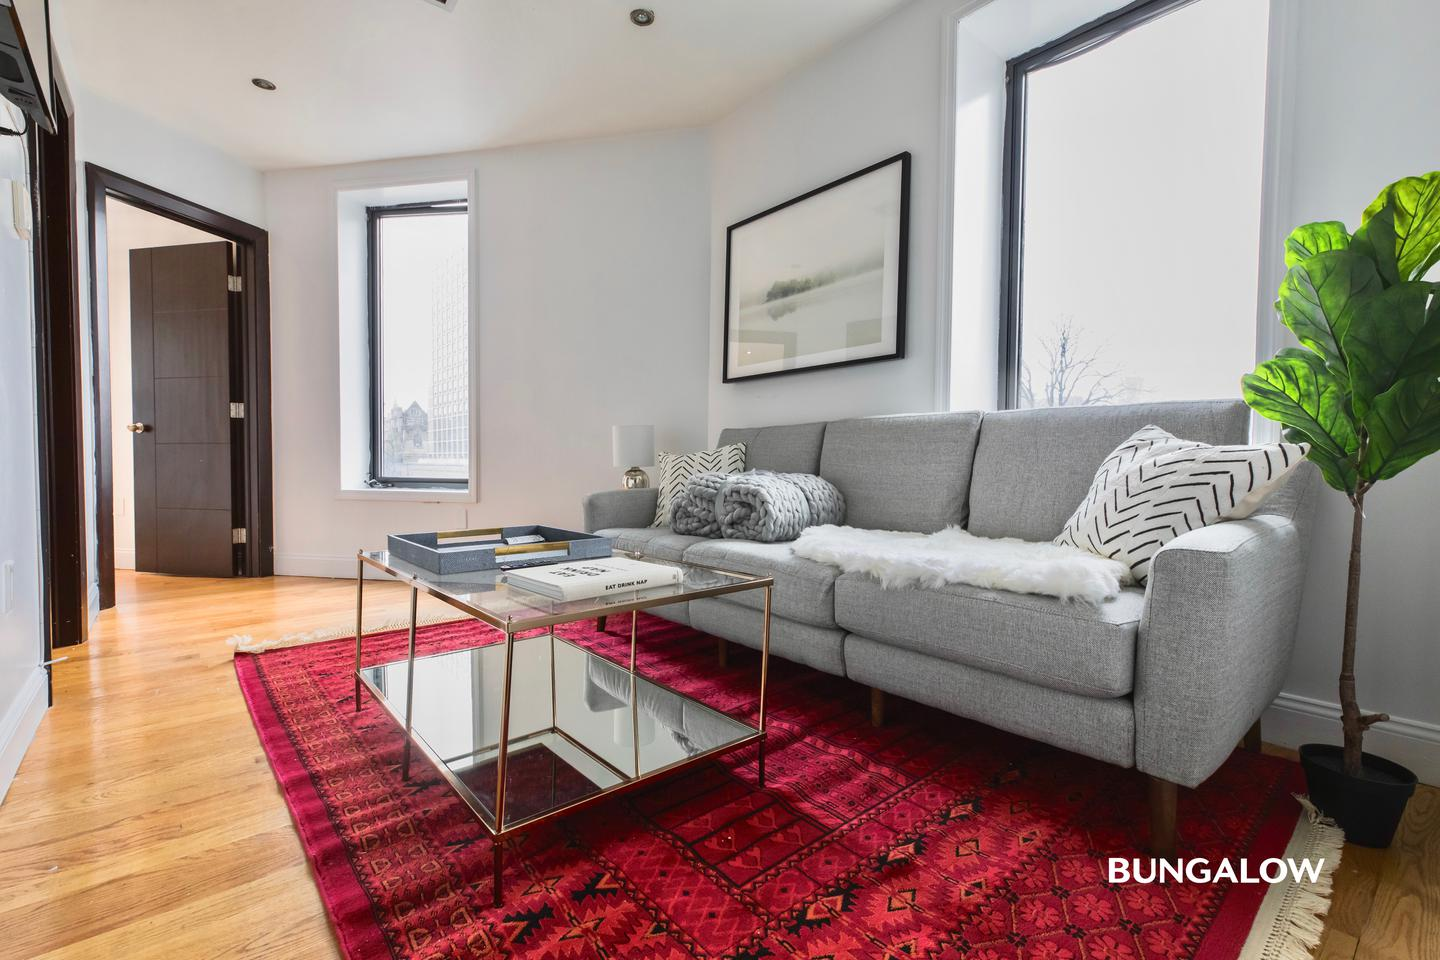 Sublets Near Lehman College Private Bedroom in Sleek Upper West Side Apartment With Gorgeous City Views for CUNY Lehman College Students in Bronx, NY